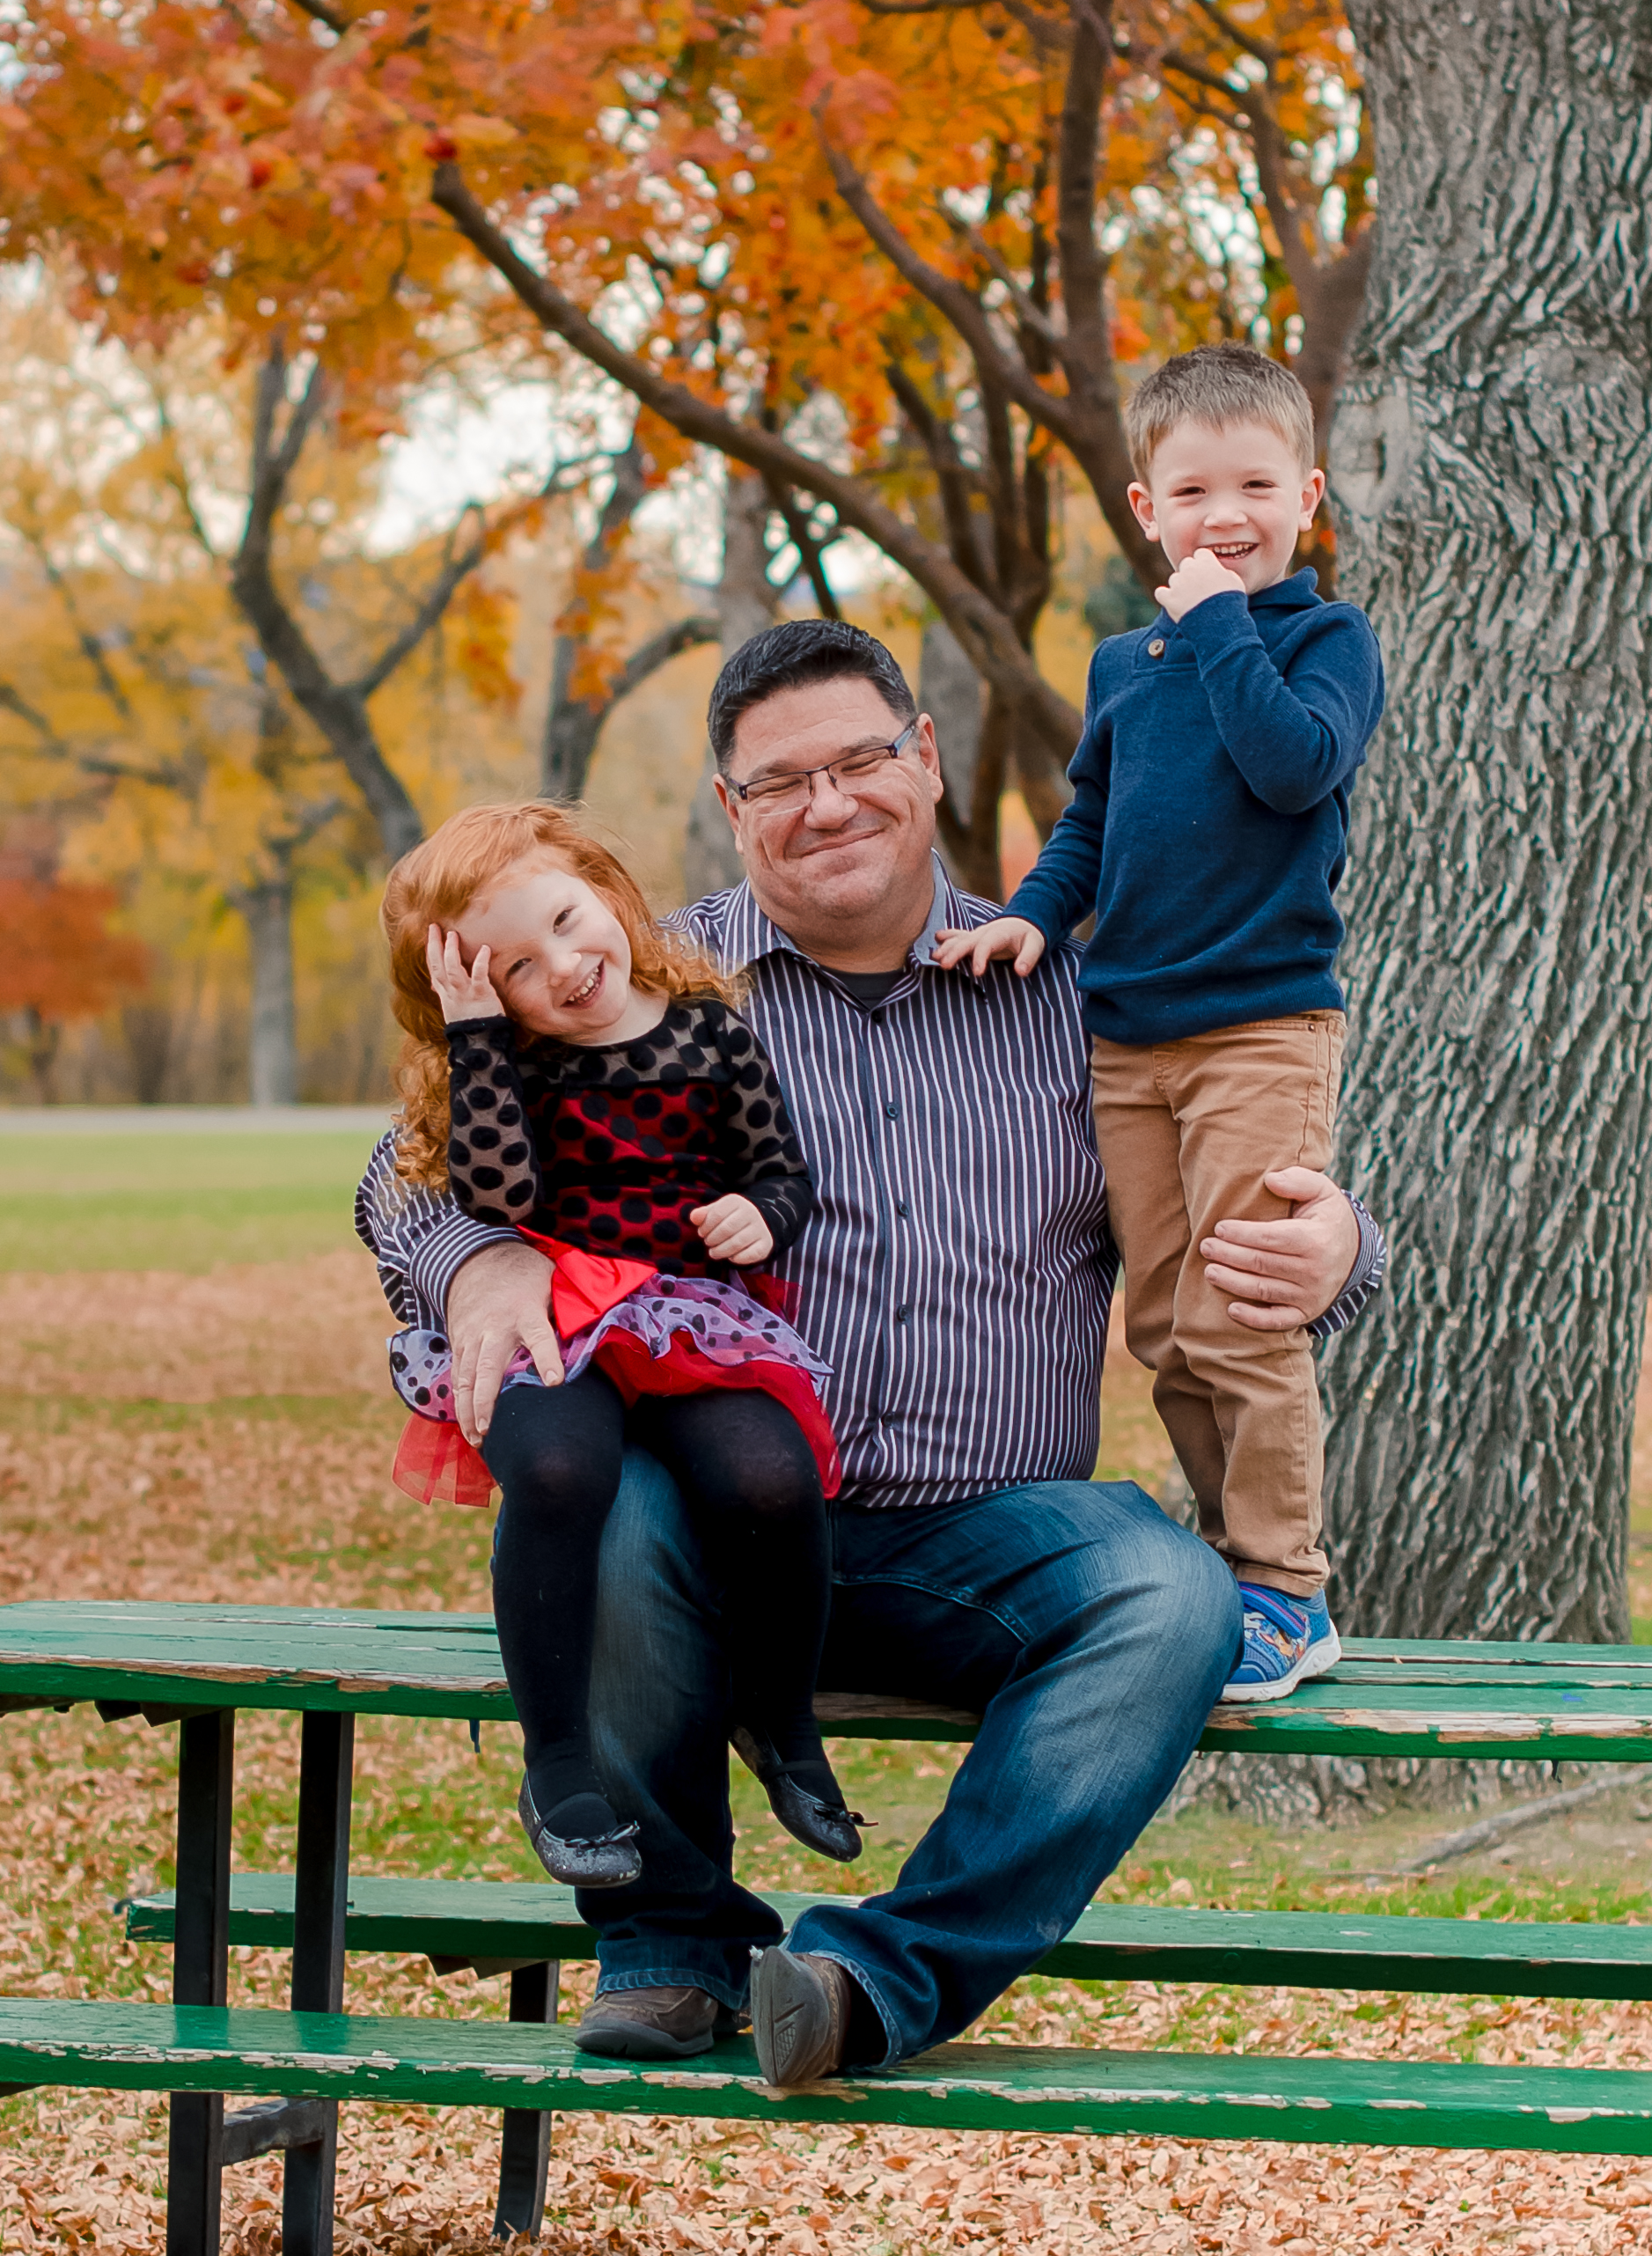 Family portrait photography by  Abigayle Ray Photography LLC  at  Sacajawea Park  in The  City of Livingston, Montana